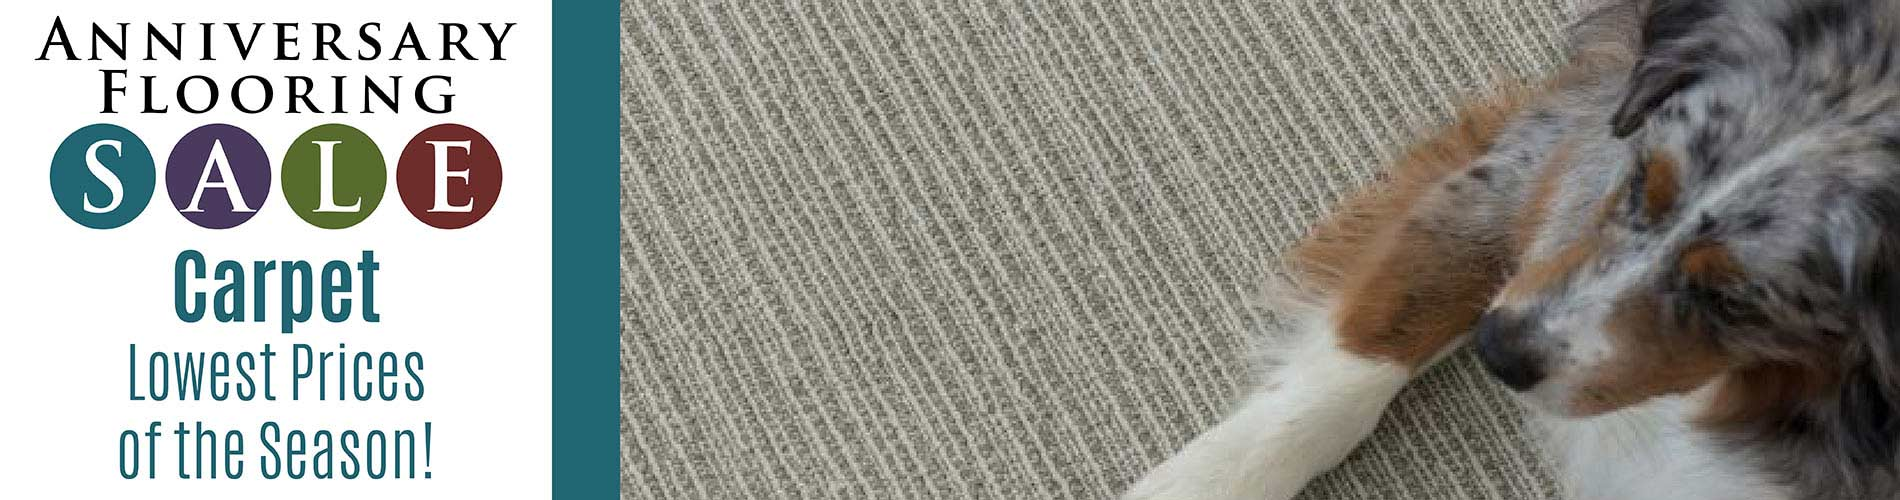 Lowest prices of the season on Carpet at Independent Flooring in Eau Claire.